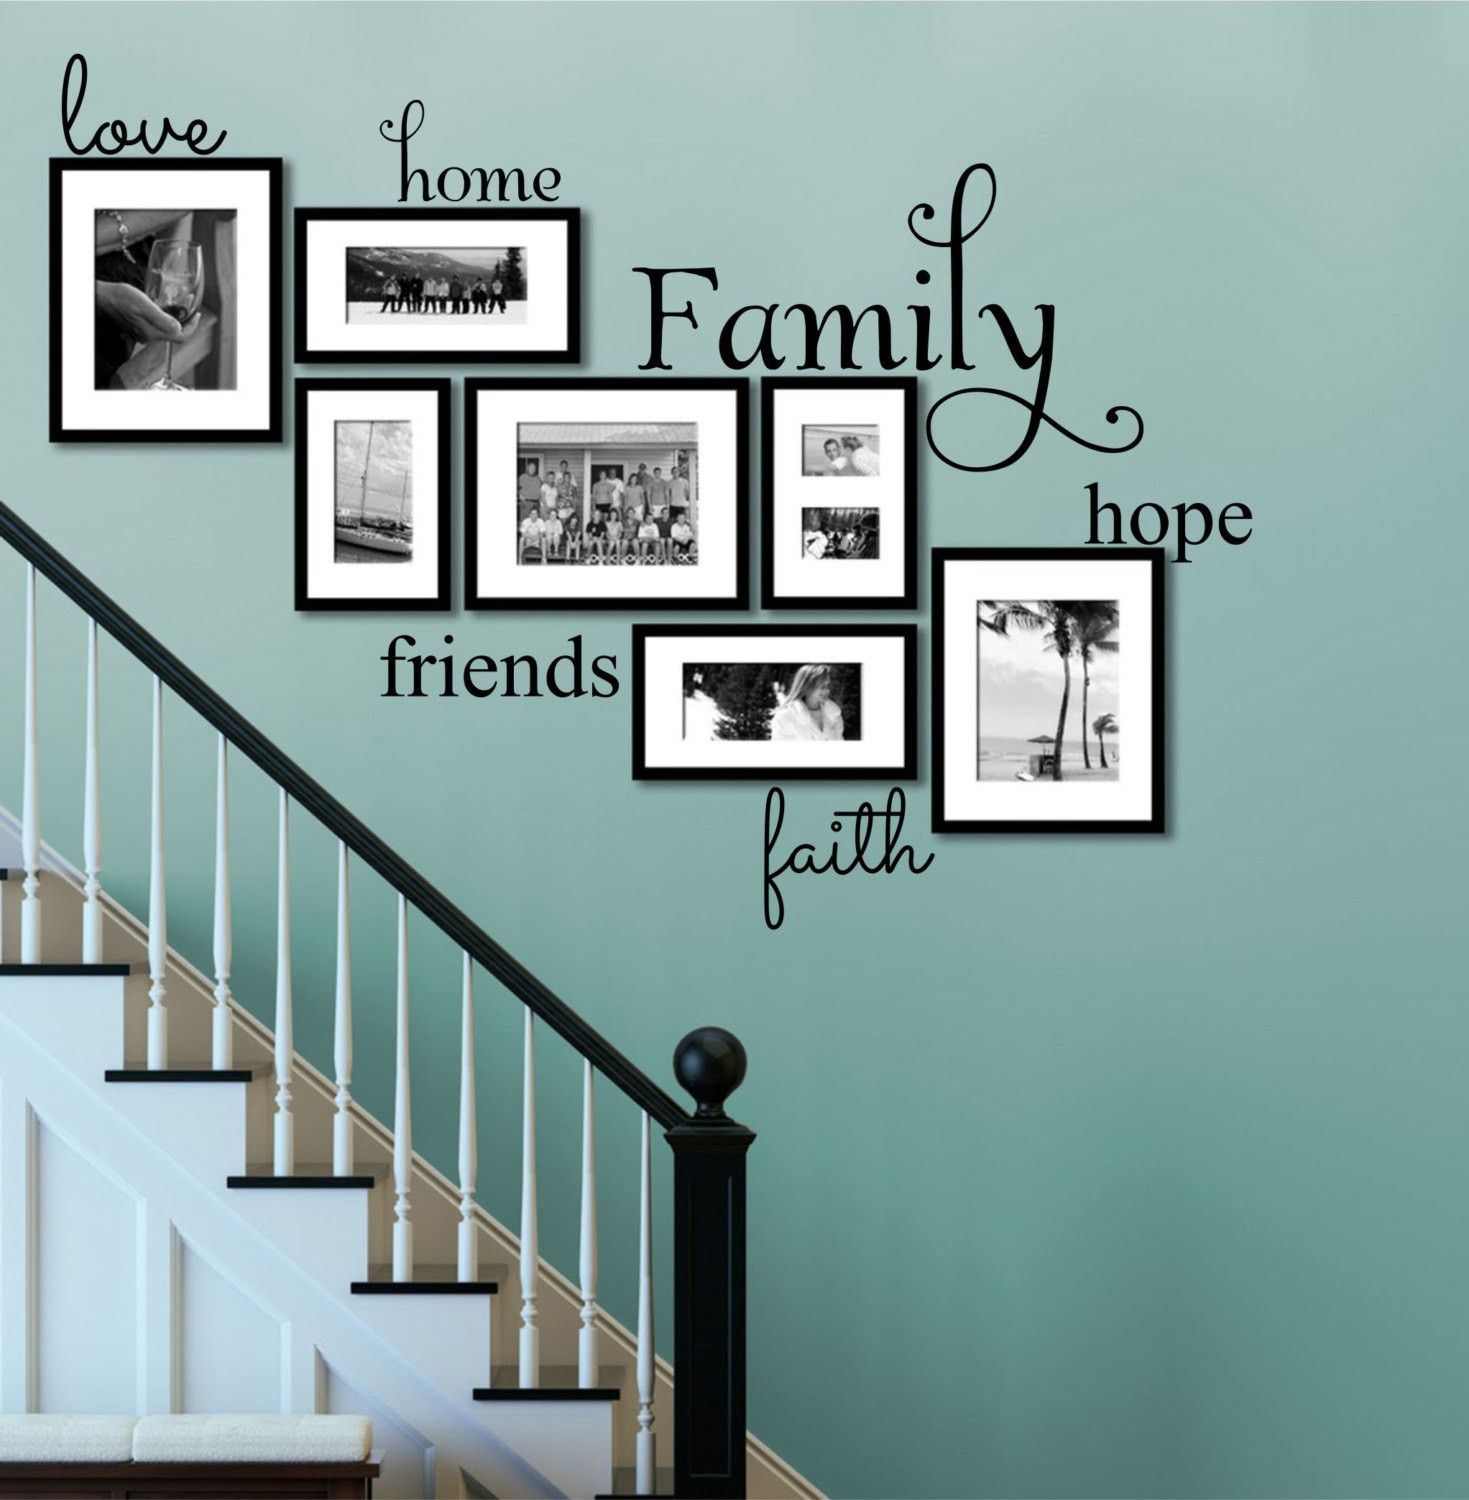 Love Home Family Hope Friends Faith Family Quote Wall Quote Vinyl Wall Decal Stickers Decor Designs Decals Family Wall Decor Diy Home Decor Word Wall Decor